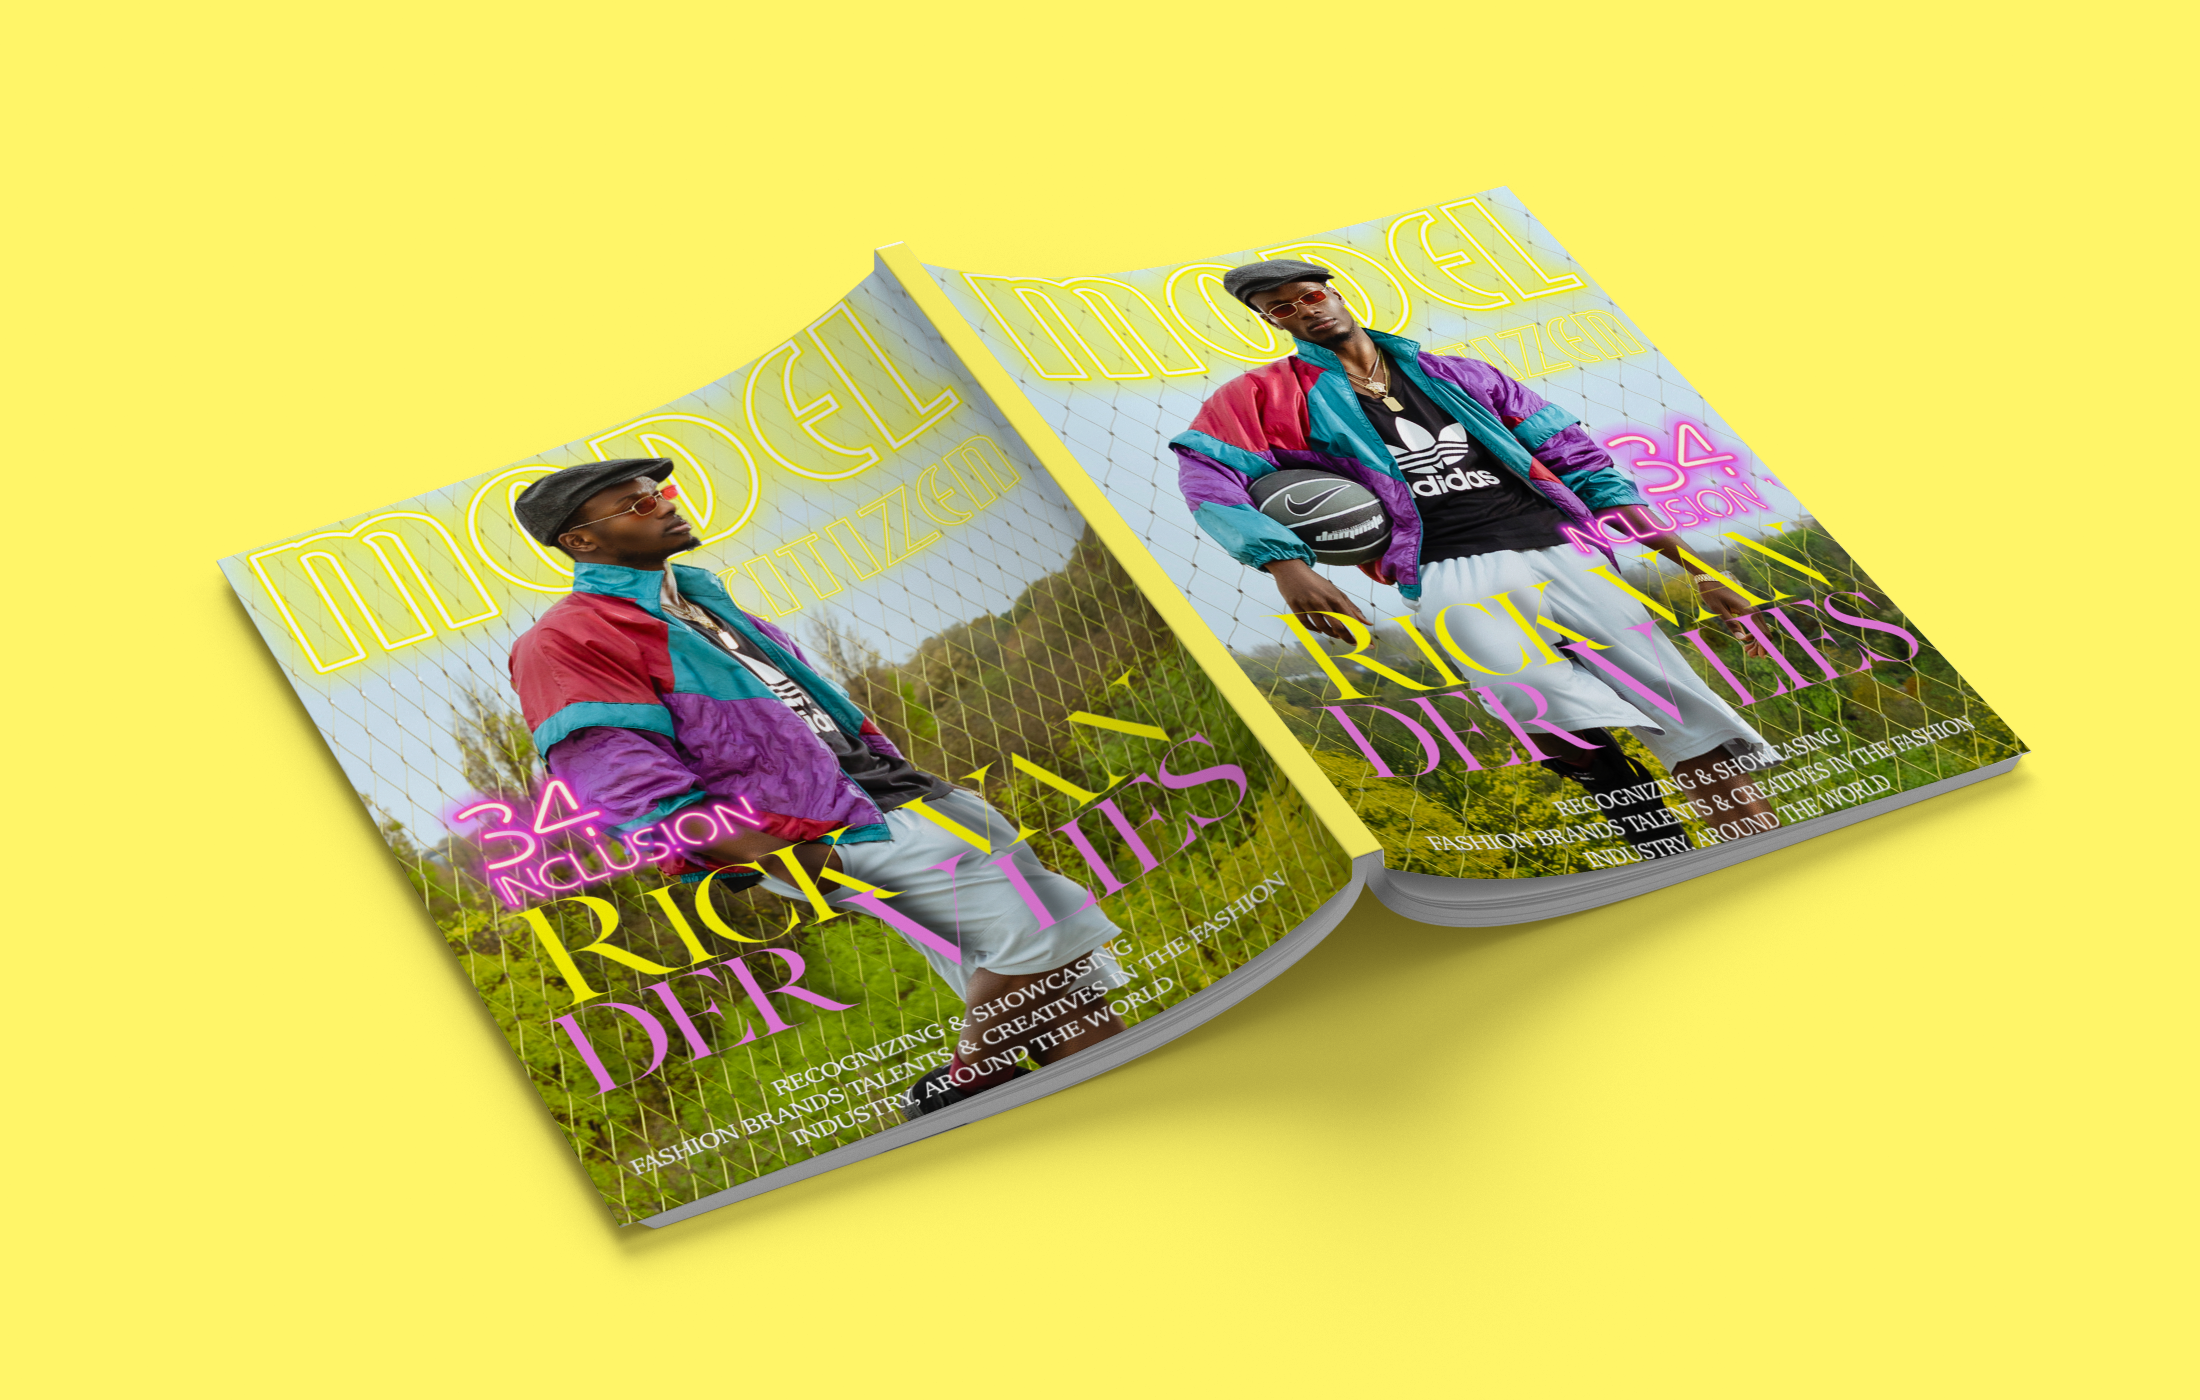 the-best-of-model-citizen-magazine-by-macky-suson-the-most-inclusive-fashion-magazine-30.png